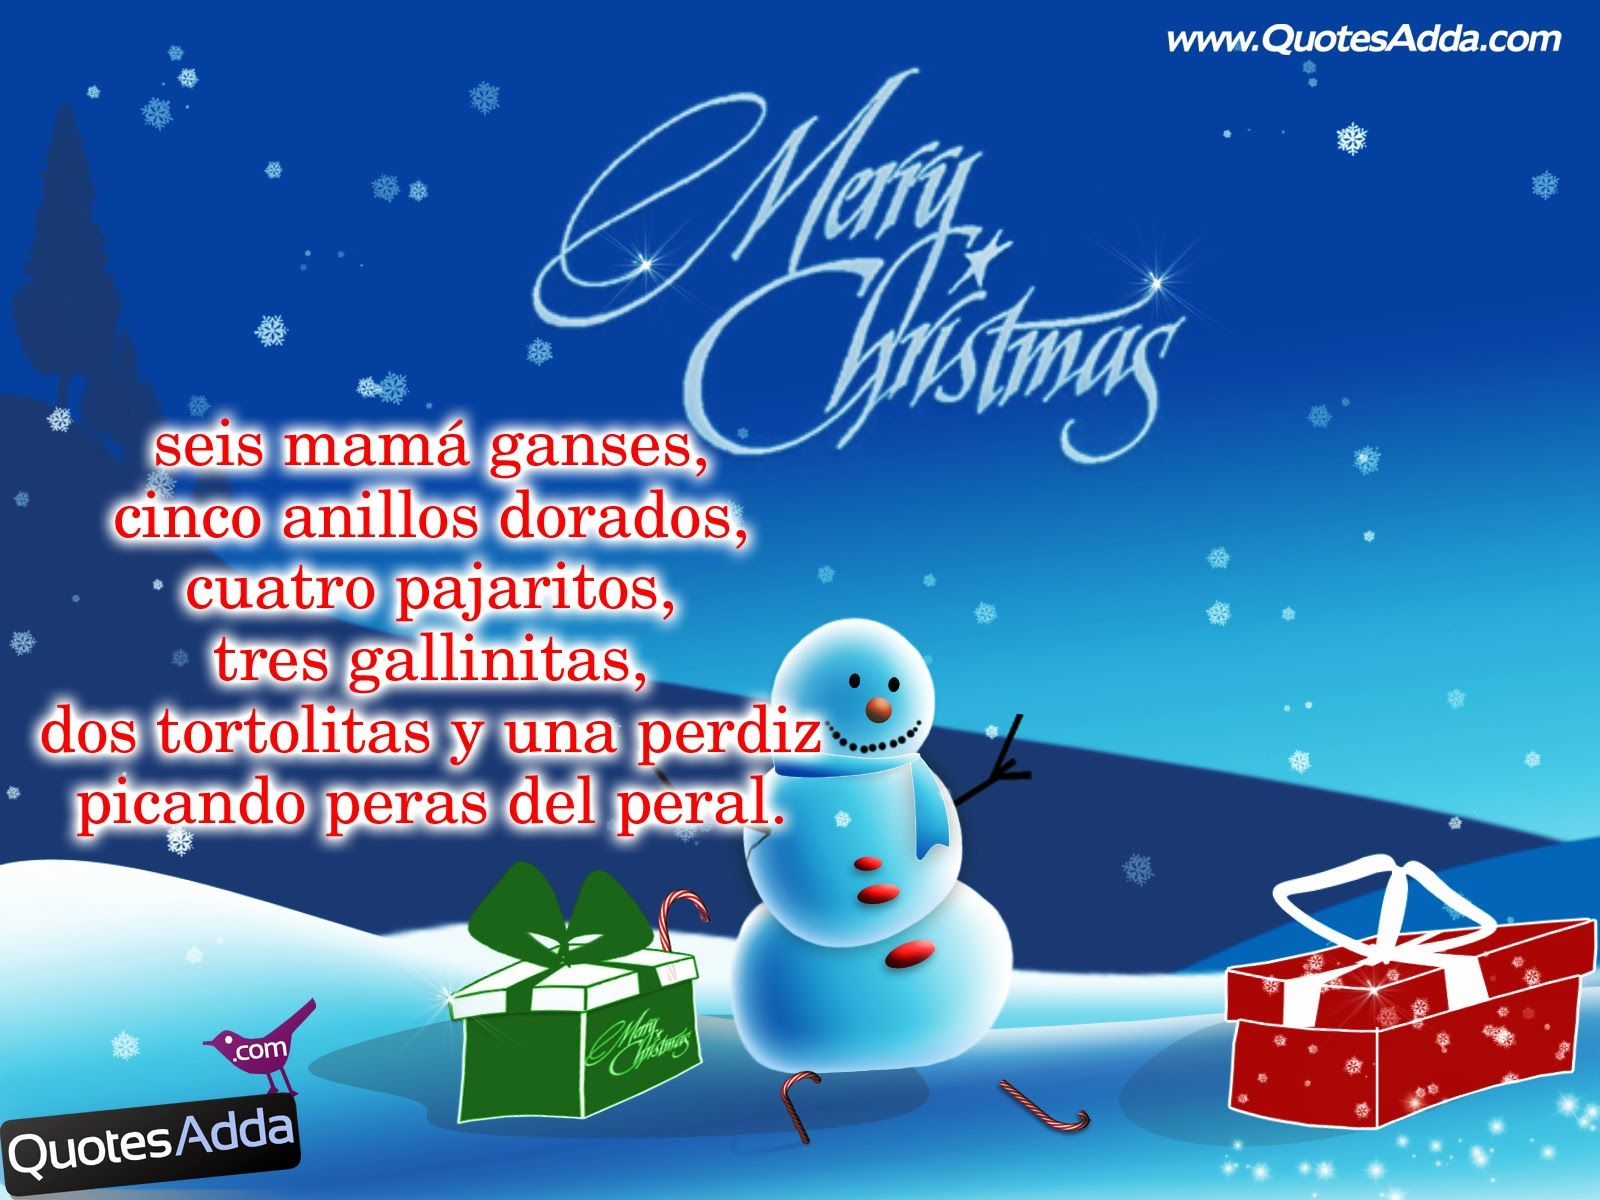 Christmas quotes in spanish quotesadda telugu quotes on the event of joys and happiness everyone is looking for queries like cool merry christmas 2015 images attractive merry christmas 2015 wallpapers kristyandbryce Images